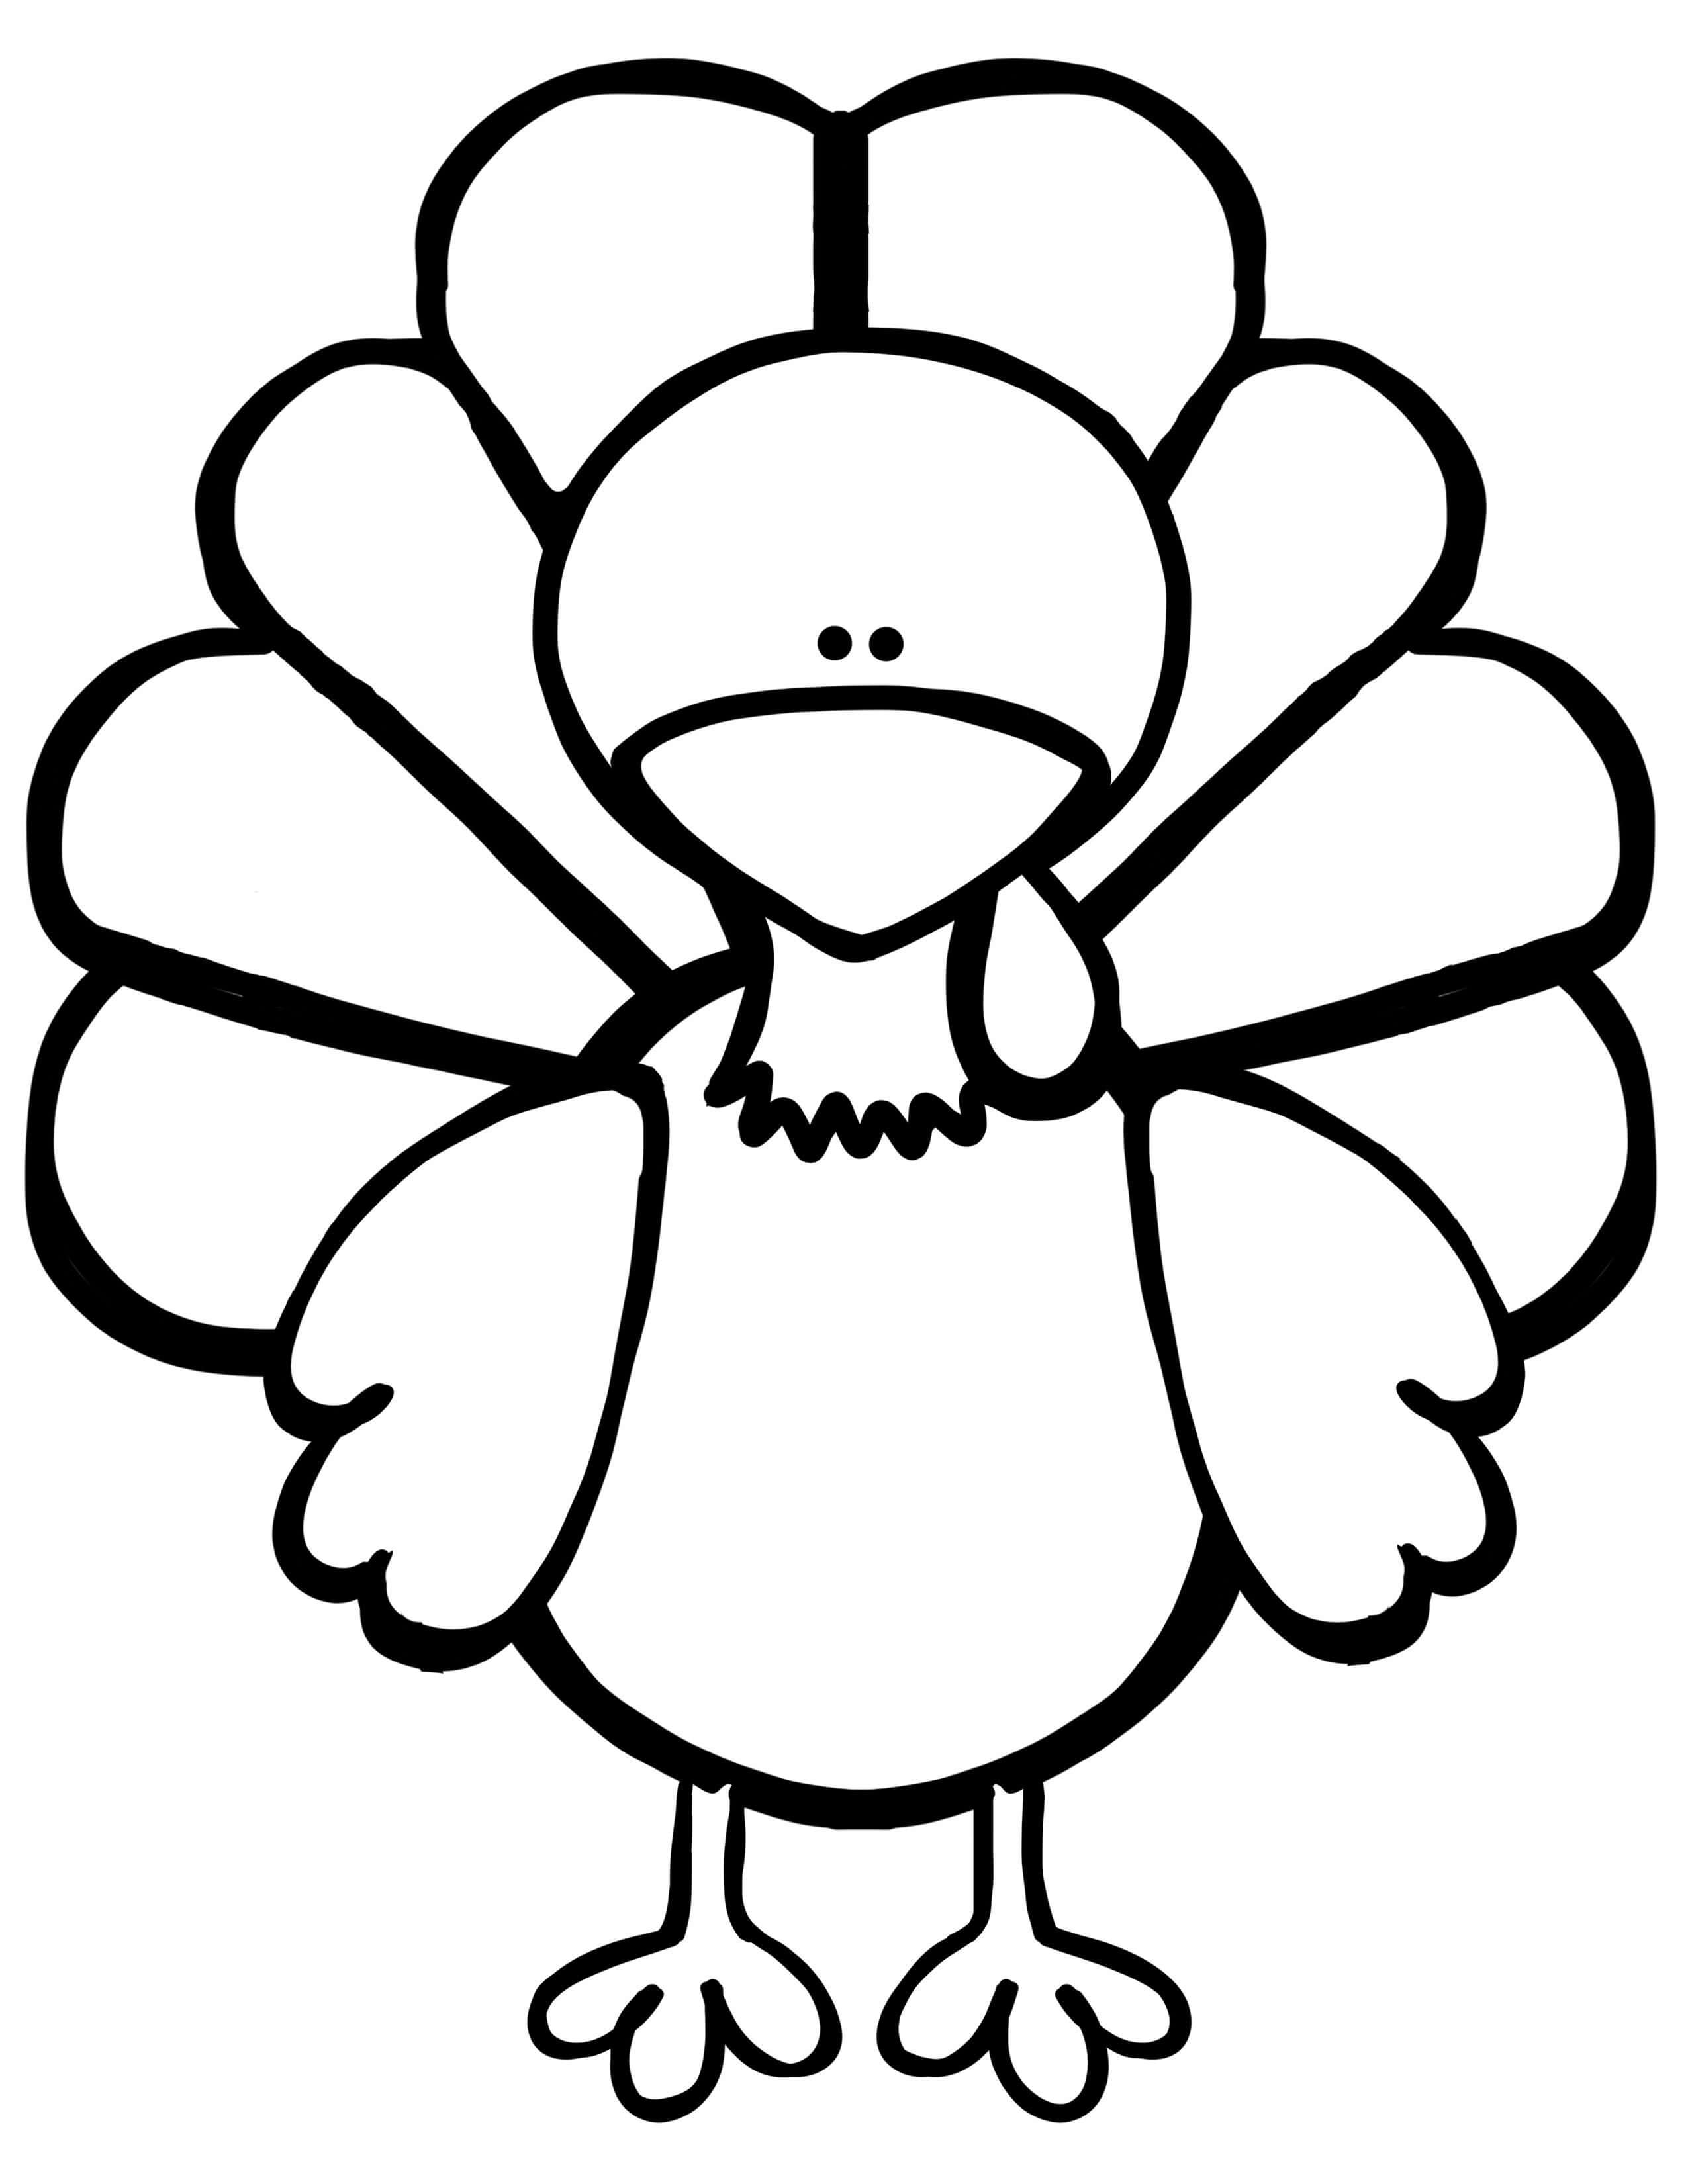 Collection Of Disguise Clipart | Free Download Best Disguise throughout Blank Turkey Template